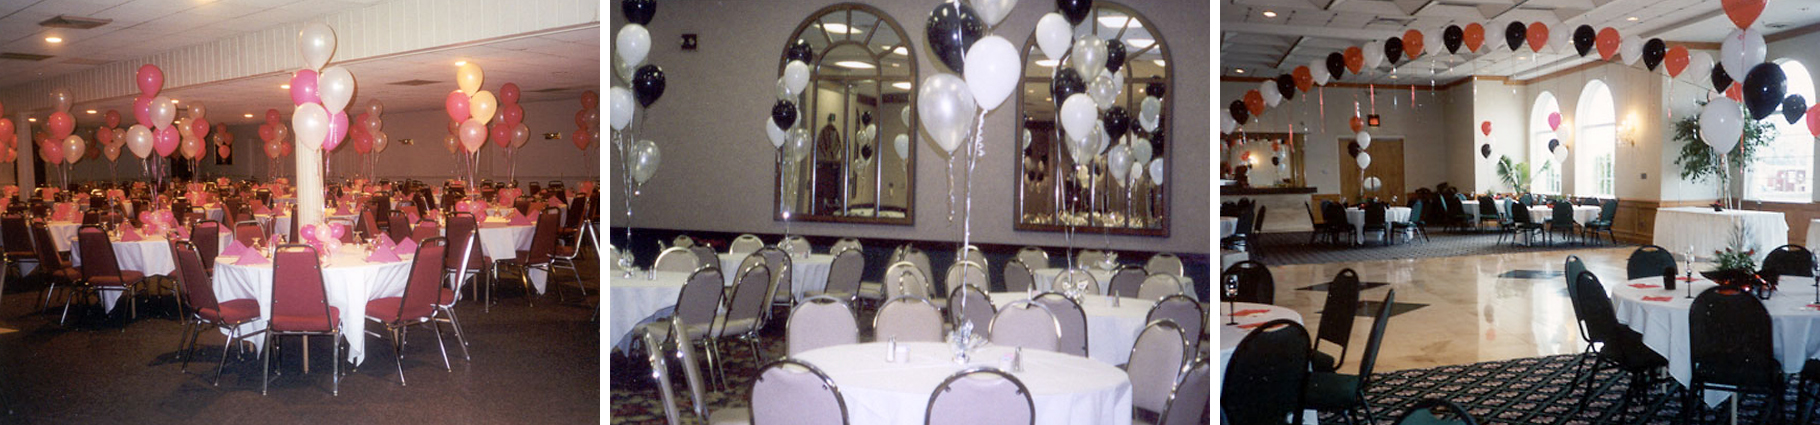 Rooms Decorated with Balloons